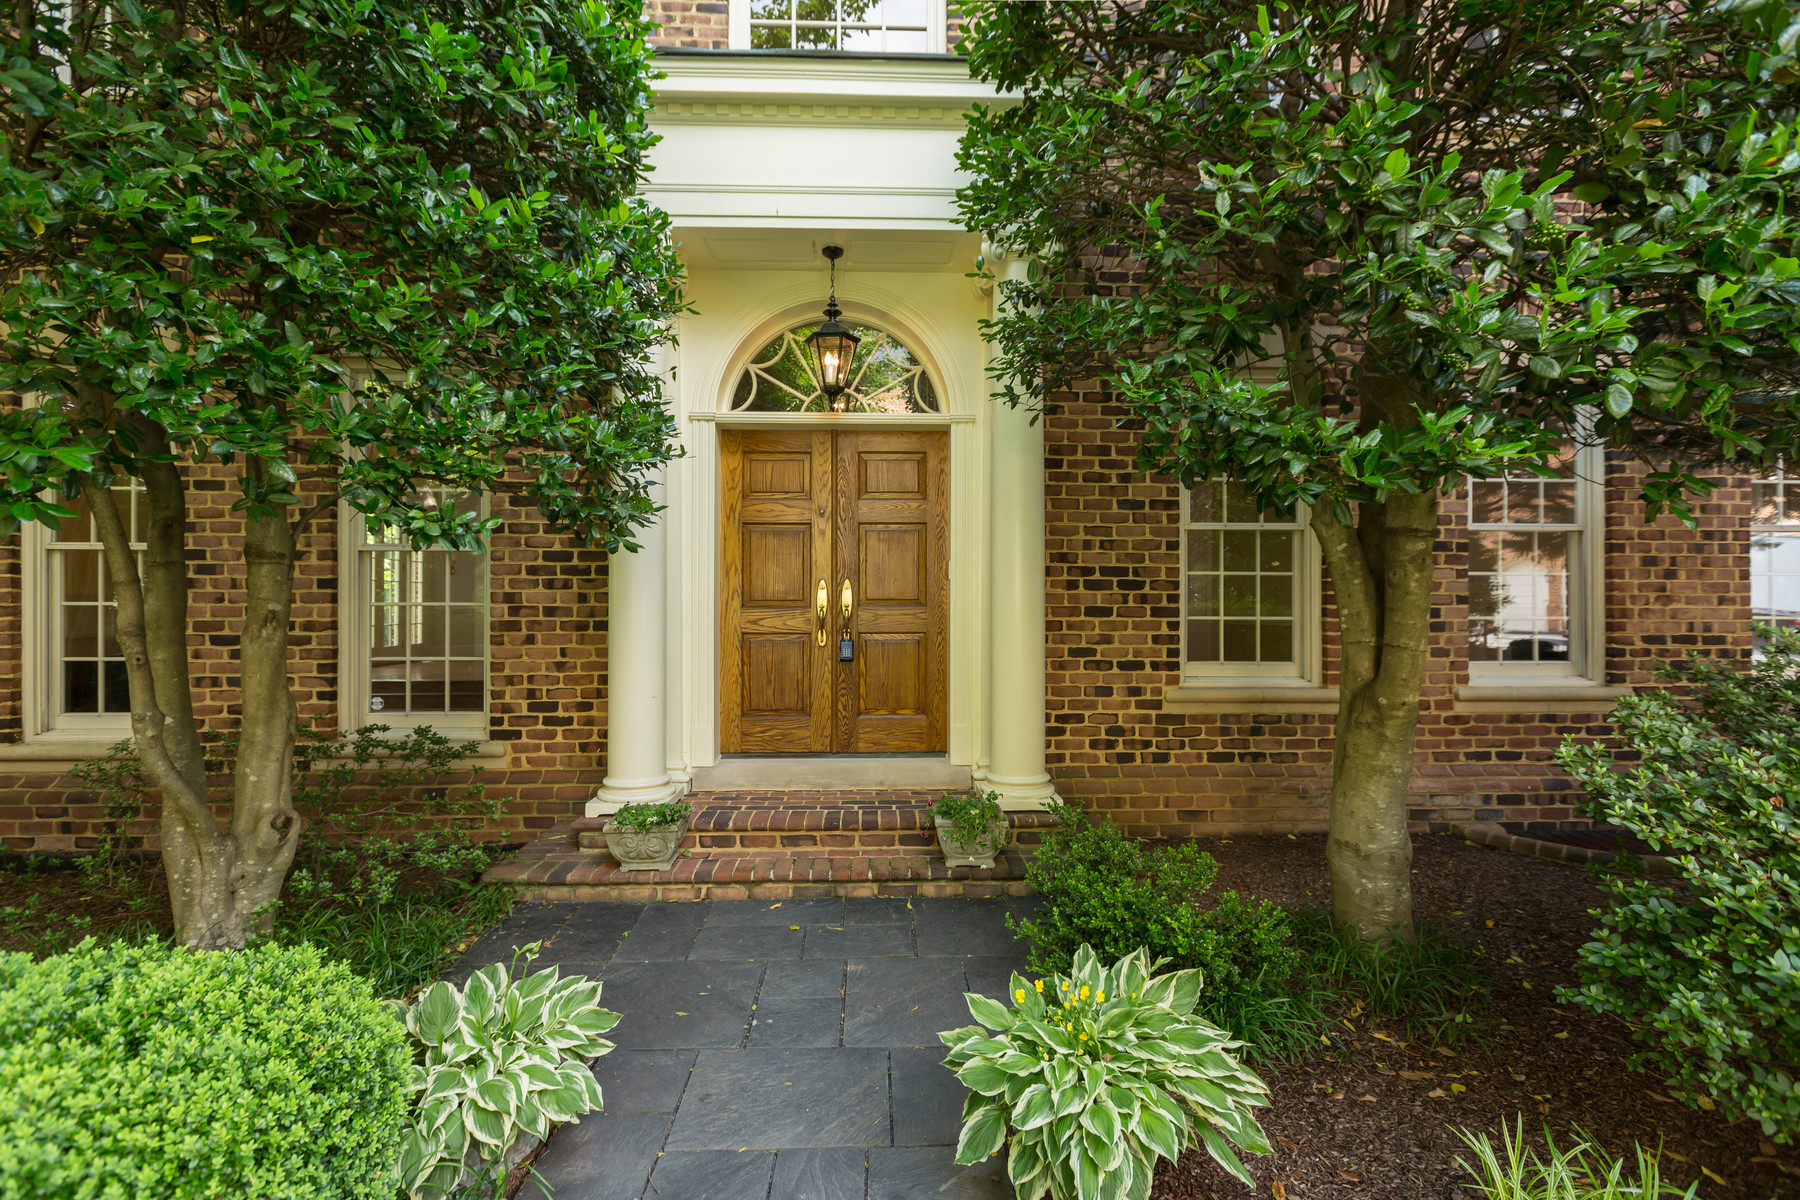 Additional photo for property listing at 1209 STUART ROBESON DR  Fairfax, 버지니아 22101 미국